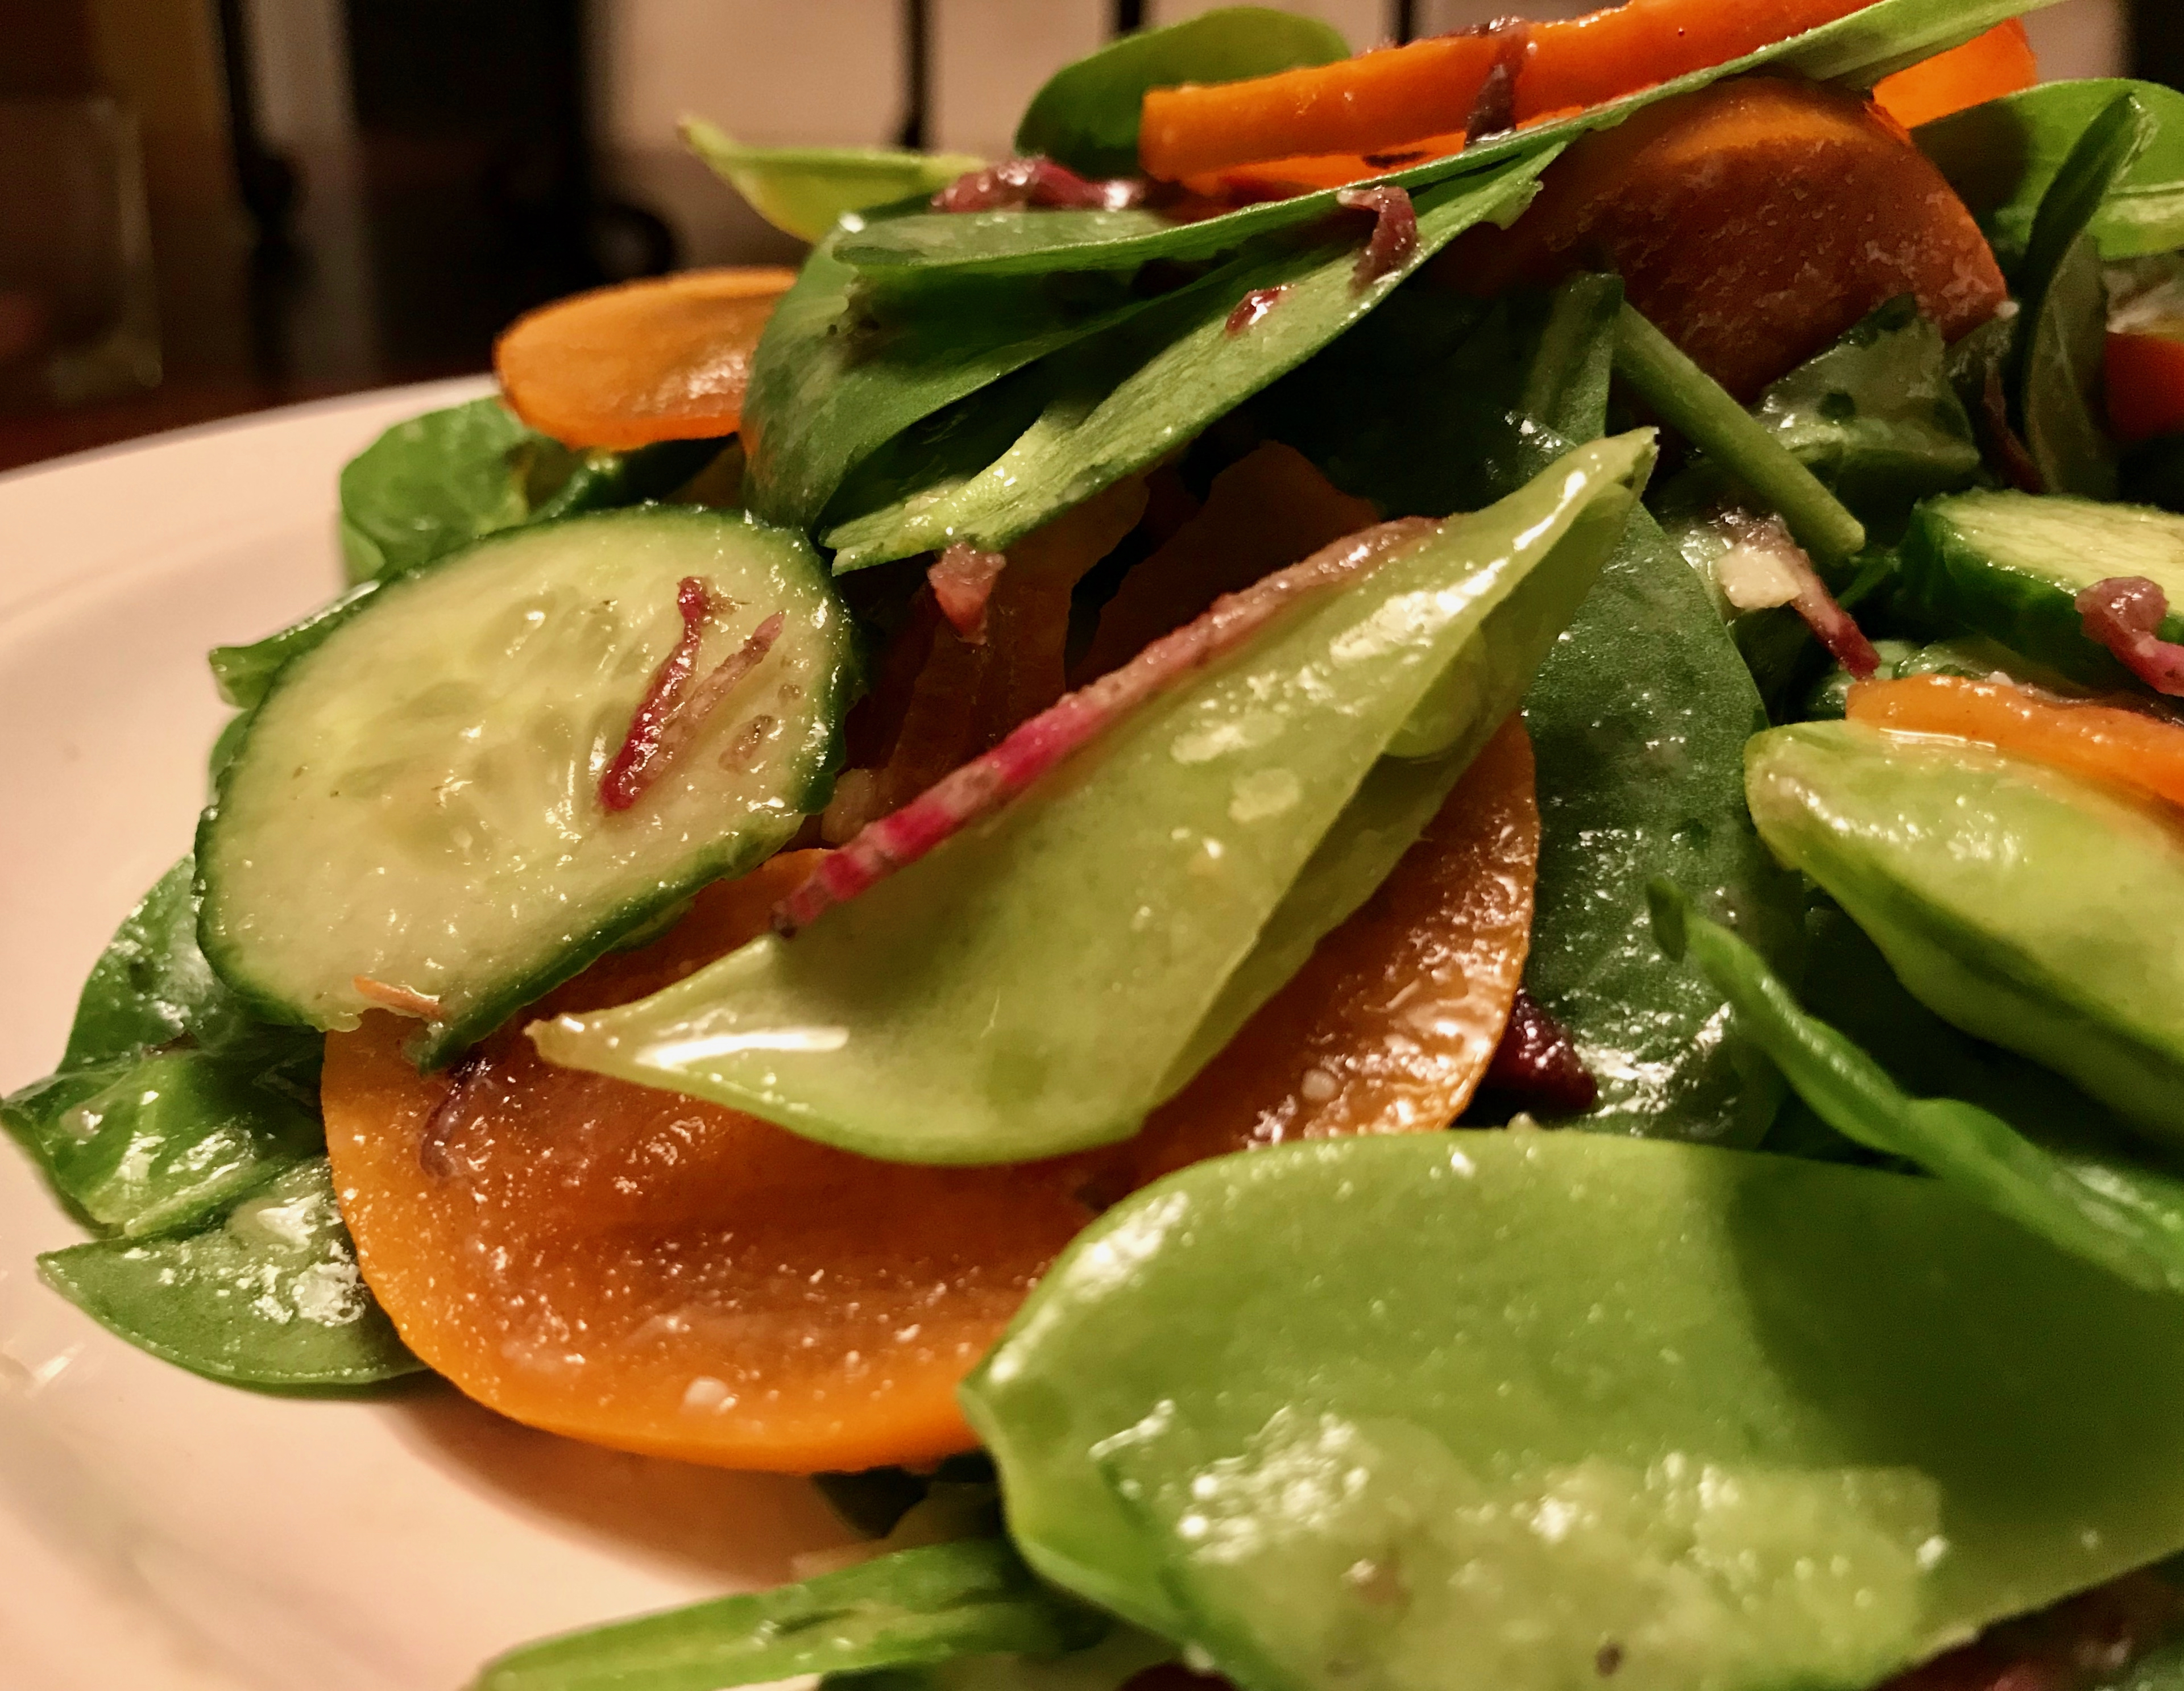 Spinach Persimmon Salad for Your Holiday Table